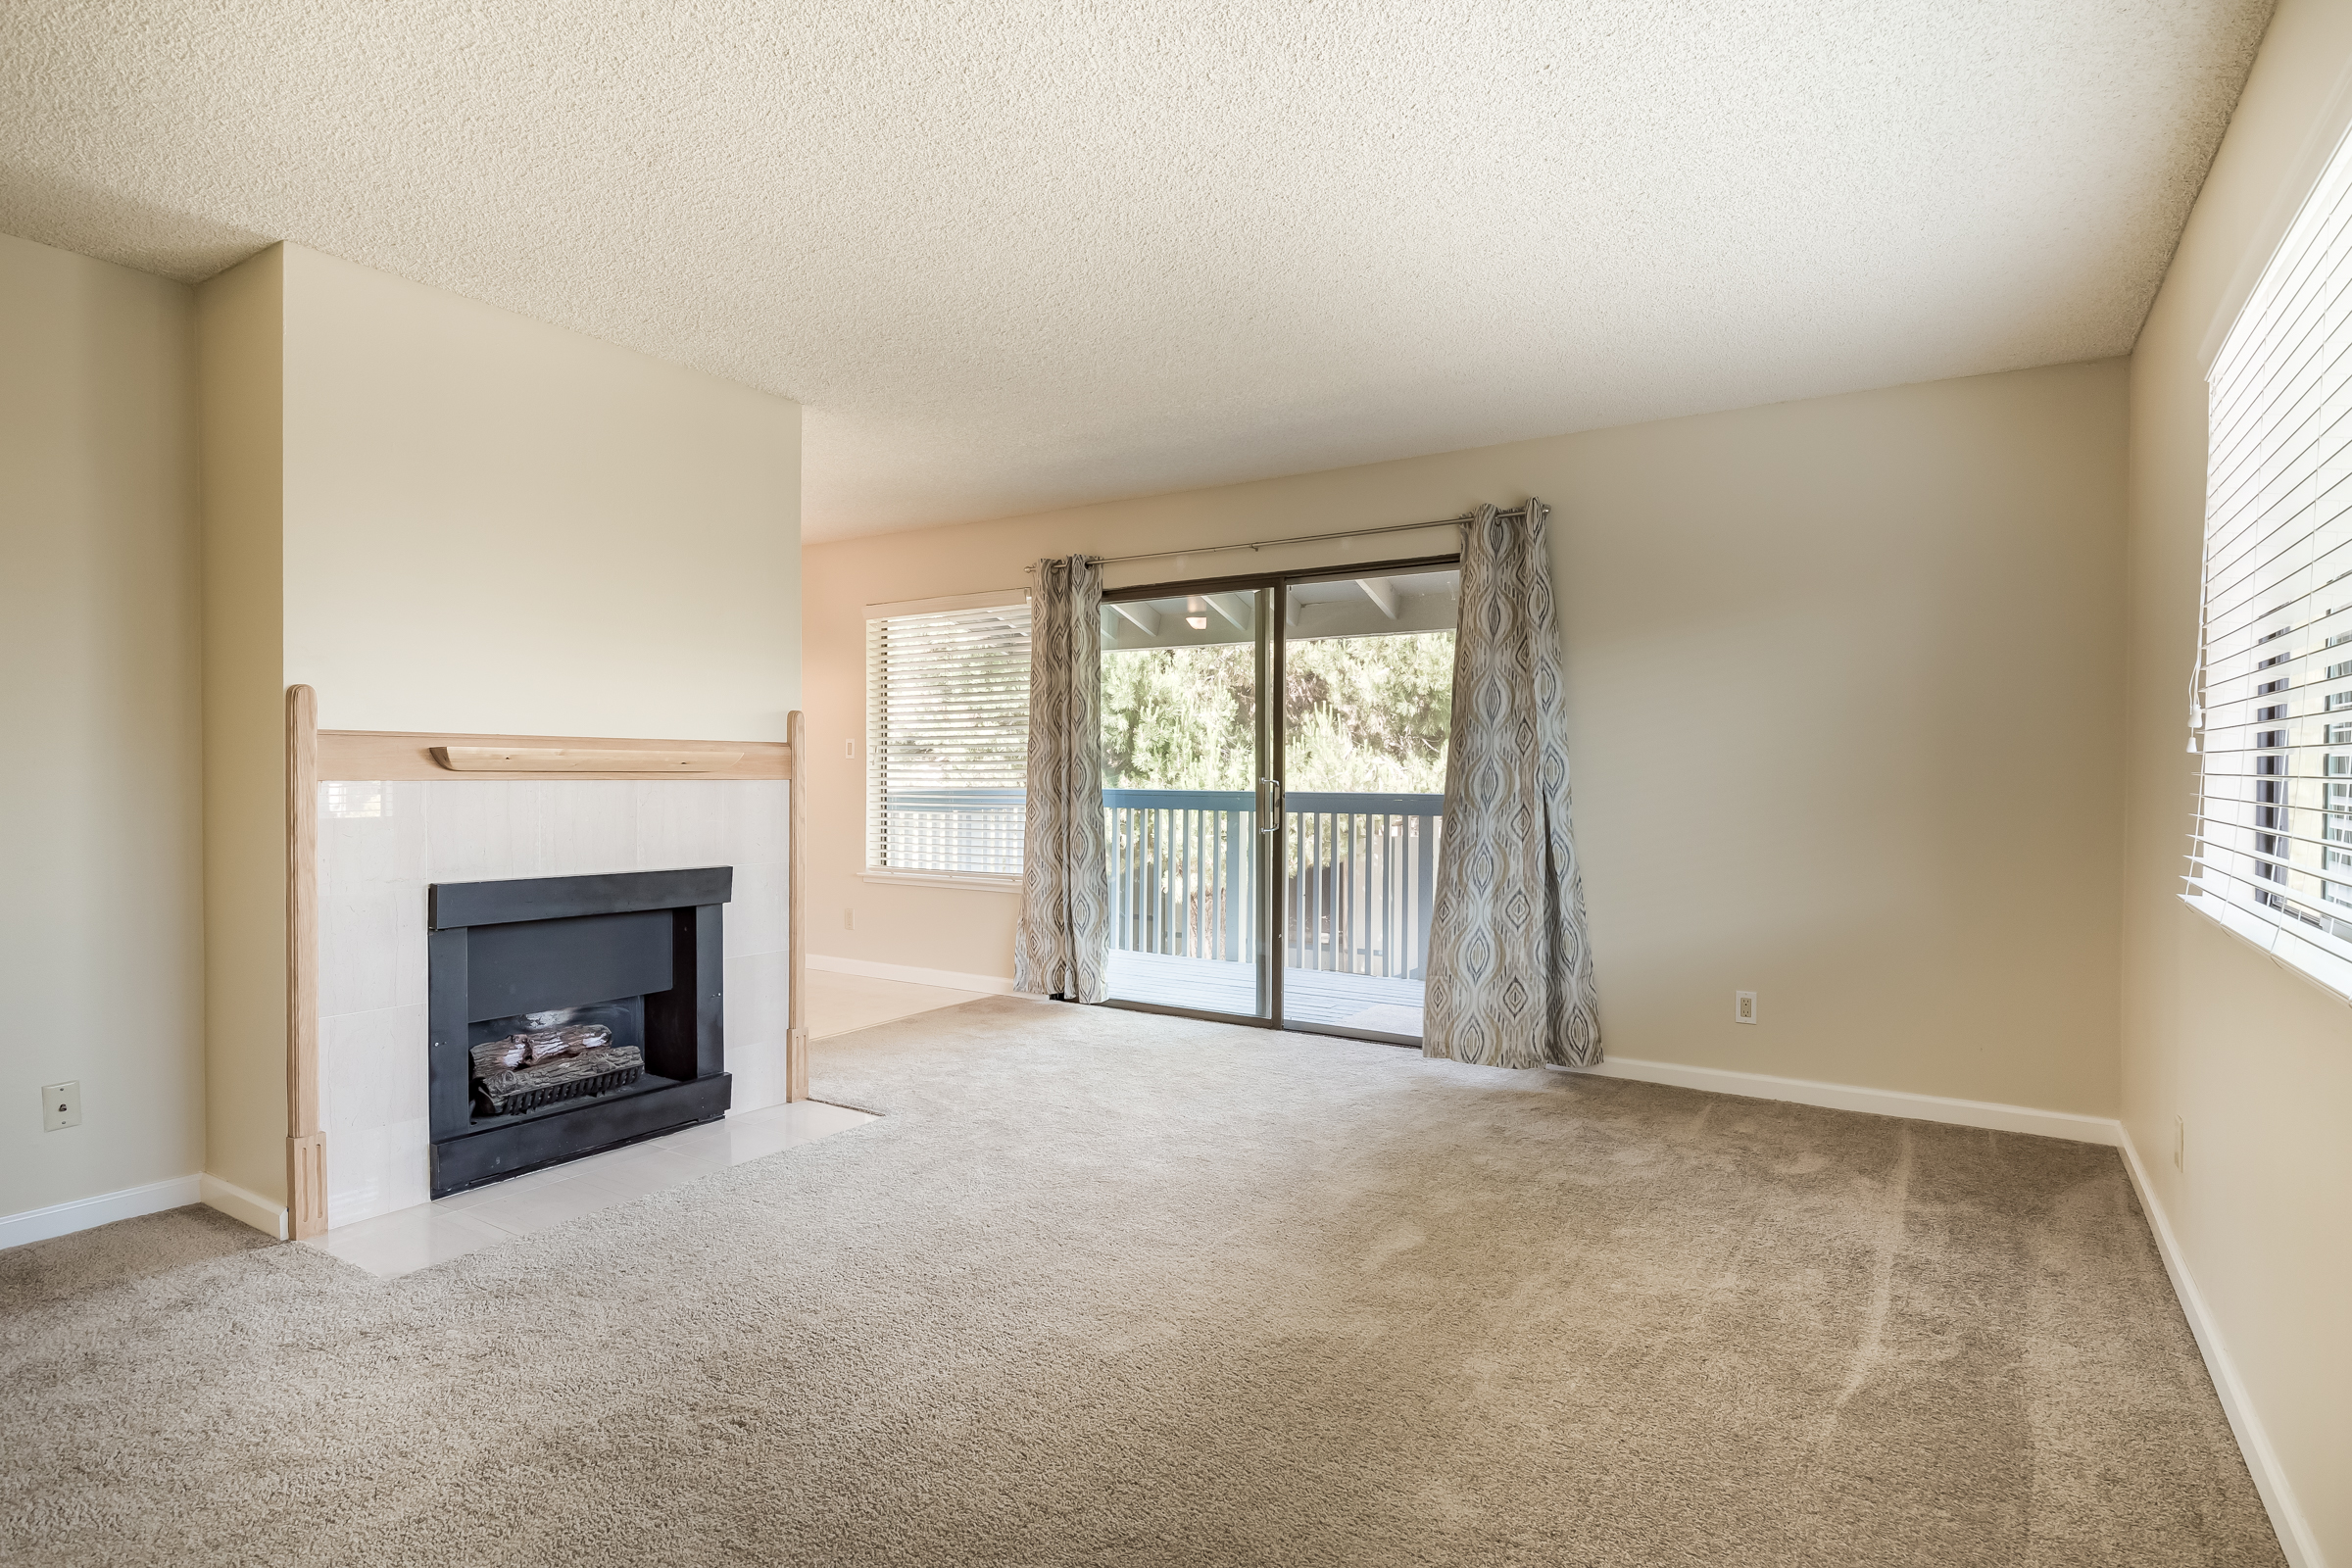 1925 46th Ave. #172: Clean Capitola 3BR Condo with new Carpets, and cozy gas fireplace